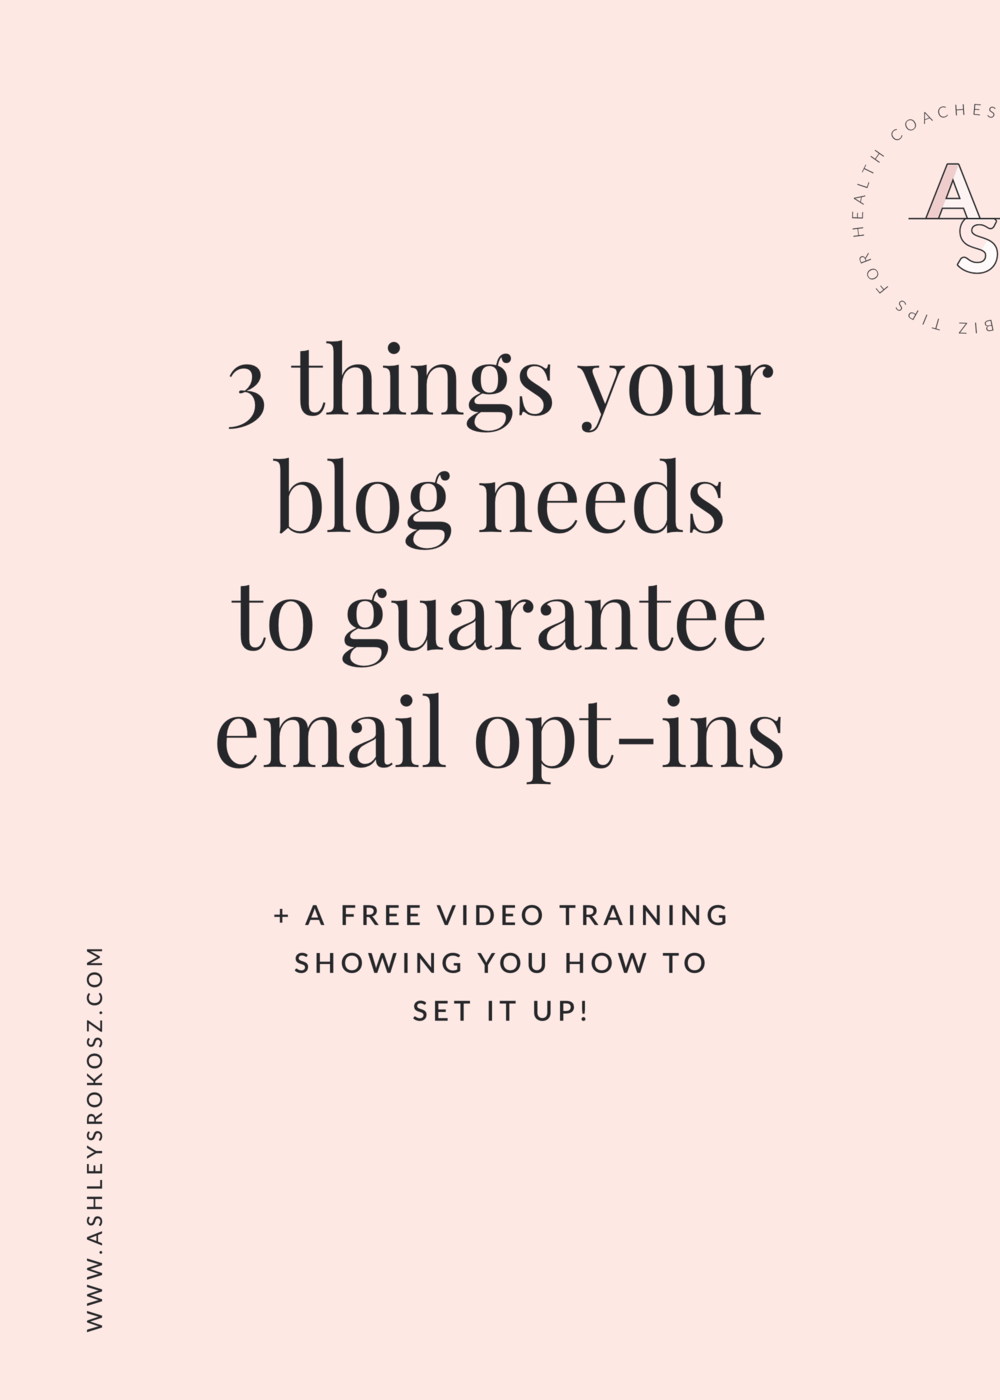 Are you blogging for your holistic health business and not growing your email list? Click here to learn the 3 things you must have on your blog to guarantee e-mail opt-ins PLUS a free video training showing you how to set it all up! This is perfect for holistic nutritionists, health coaches, or yoga teachers.